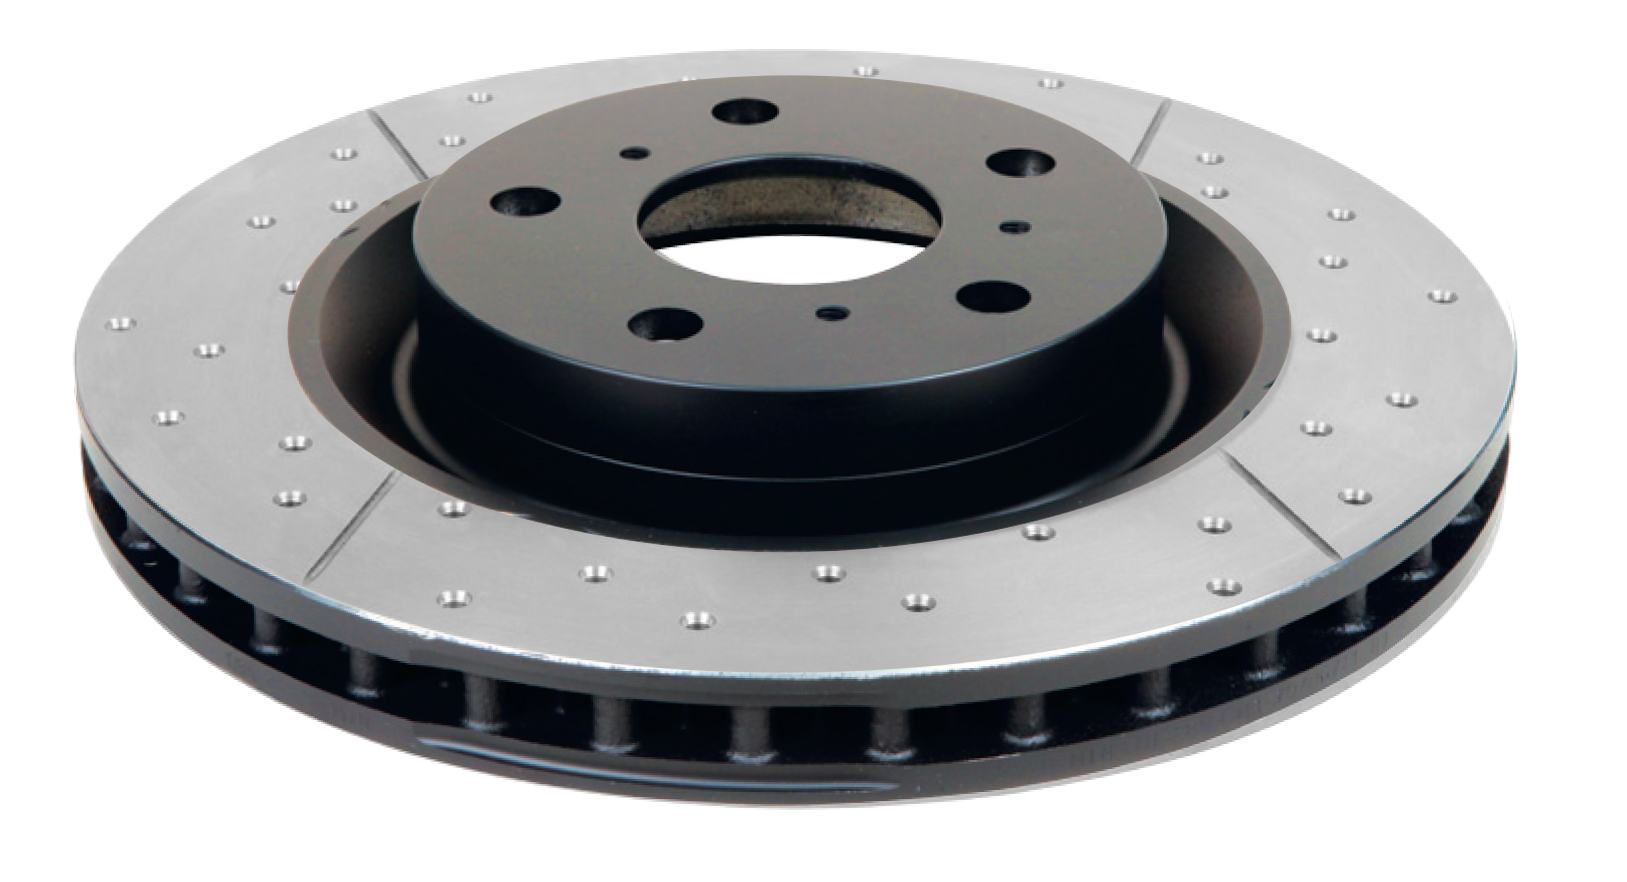 DBA Street Series Rotor - Cross Drilled/Slotted Uni-Directional Rotor - DBA 069BLKX